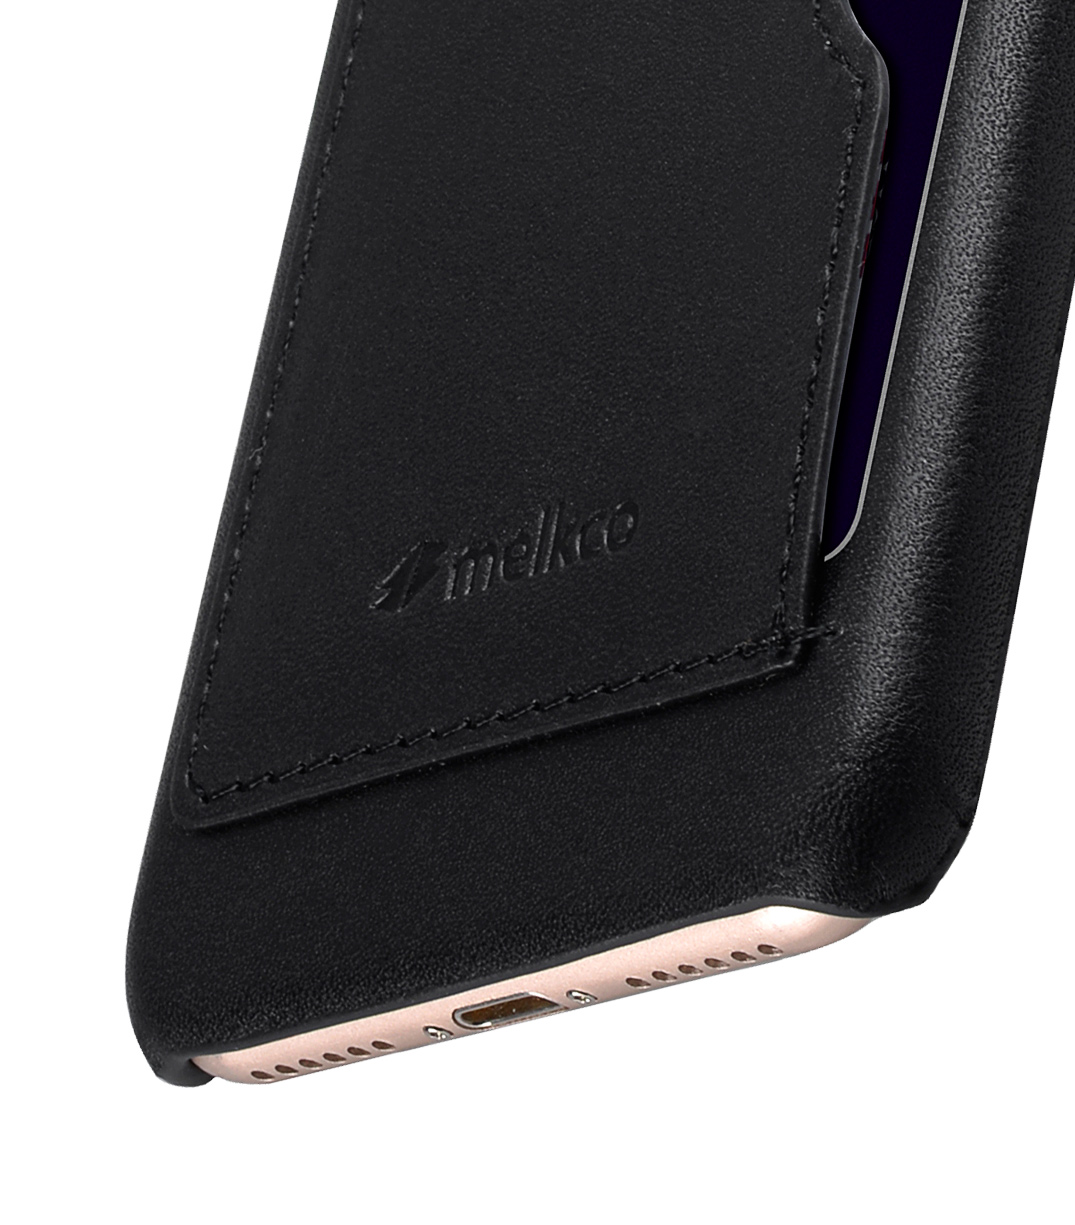 """Melkco Premium Leather Card Slot Snap Cover (Ver.1) for Apple iPhone 7 (4.7"""") (Black)"""